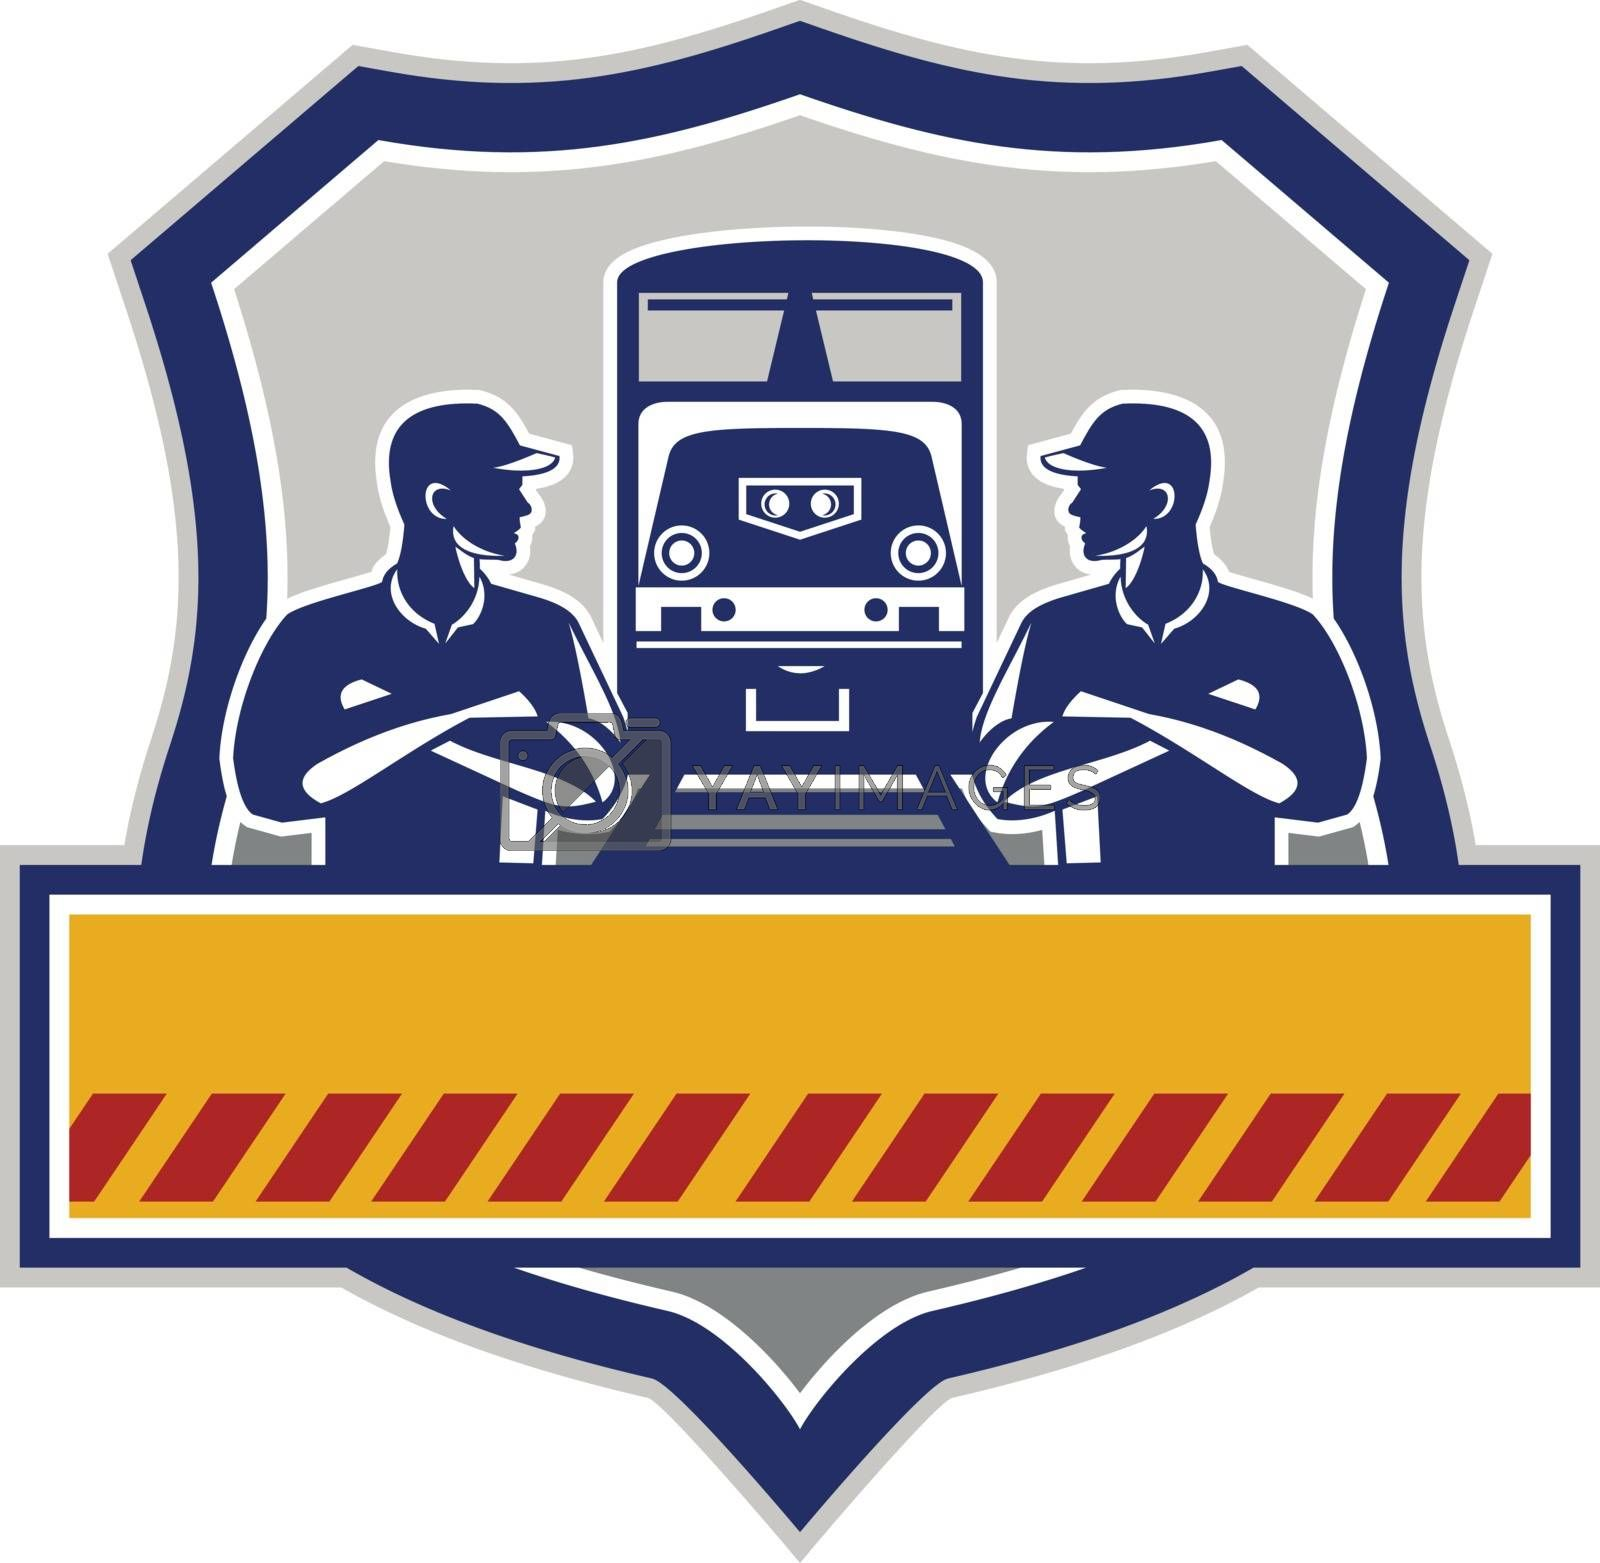 Illustration of train engineers with arms crossed looking at each other with diesel train on rail tracks in the background set inside shield crest done in retro style.